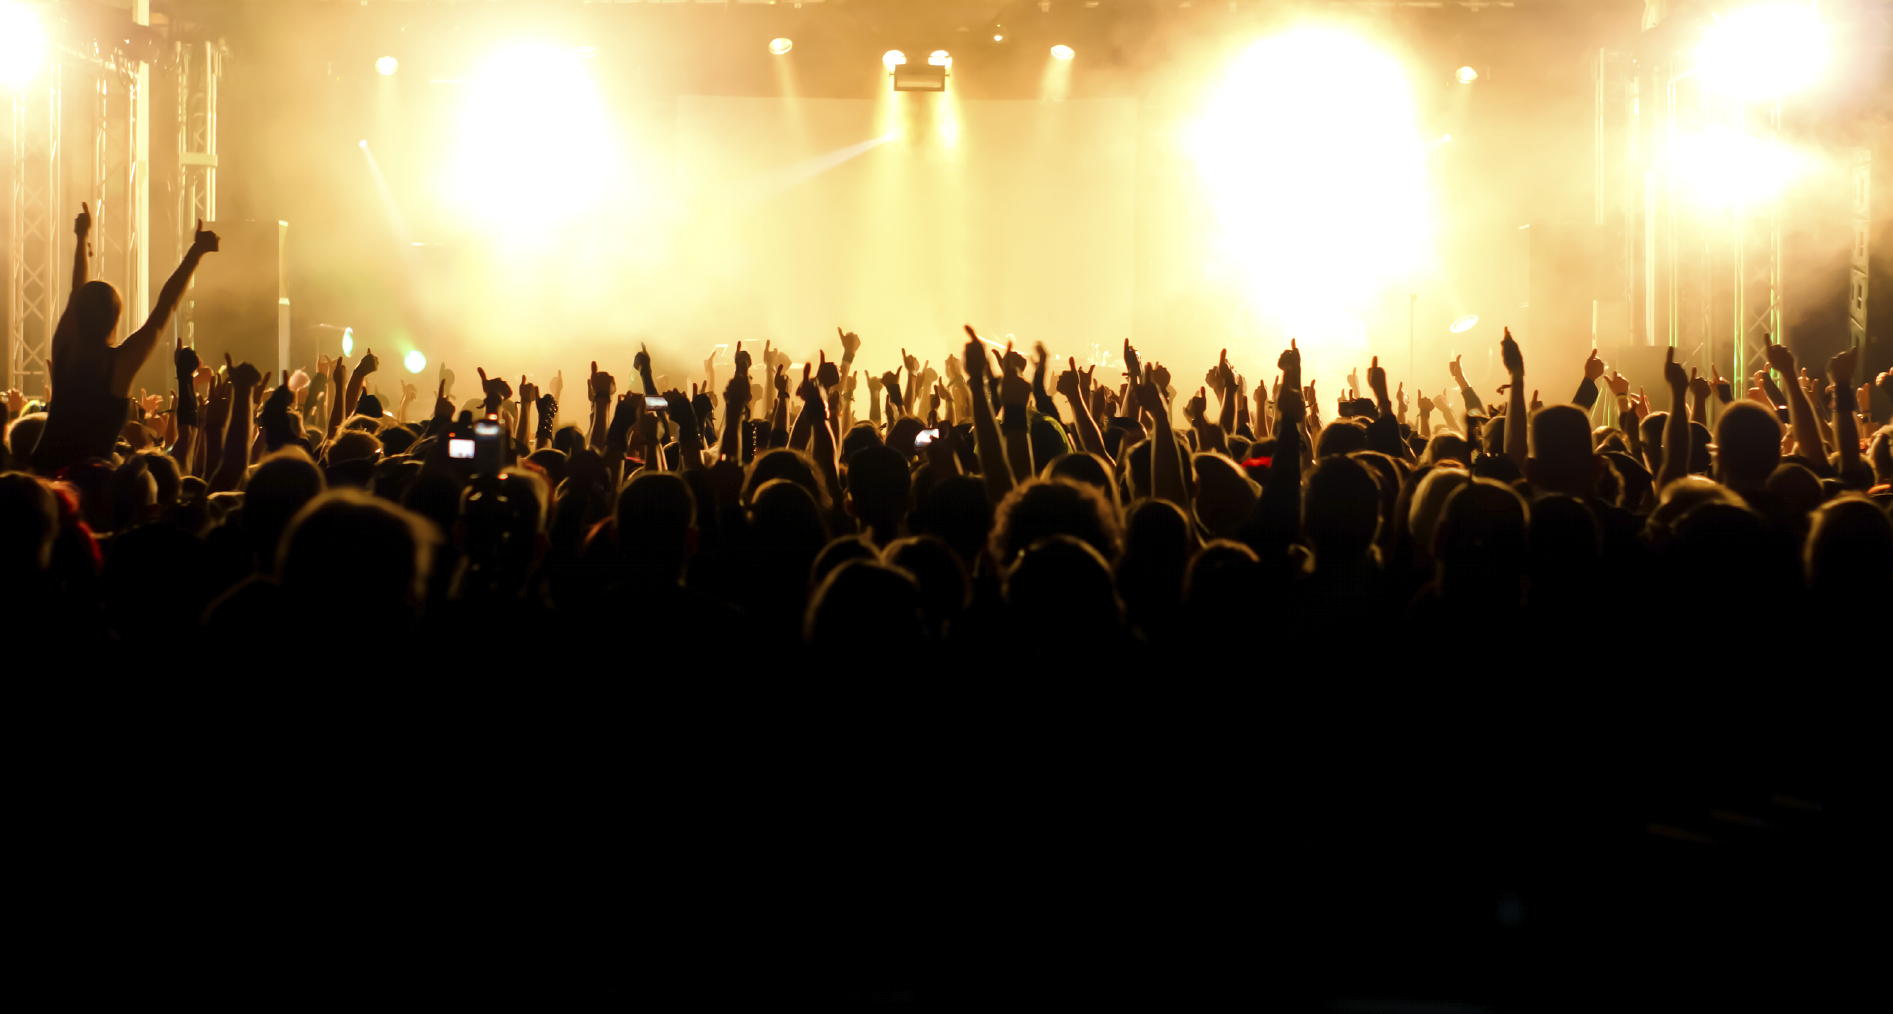 Concert Stage Wallpaper Concert Crowd From Stage 1893x1014